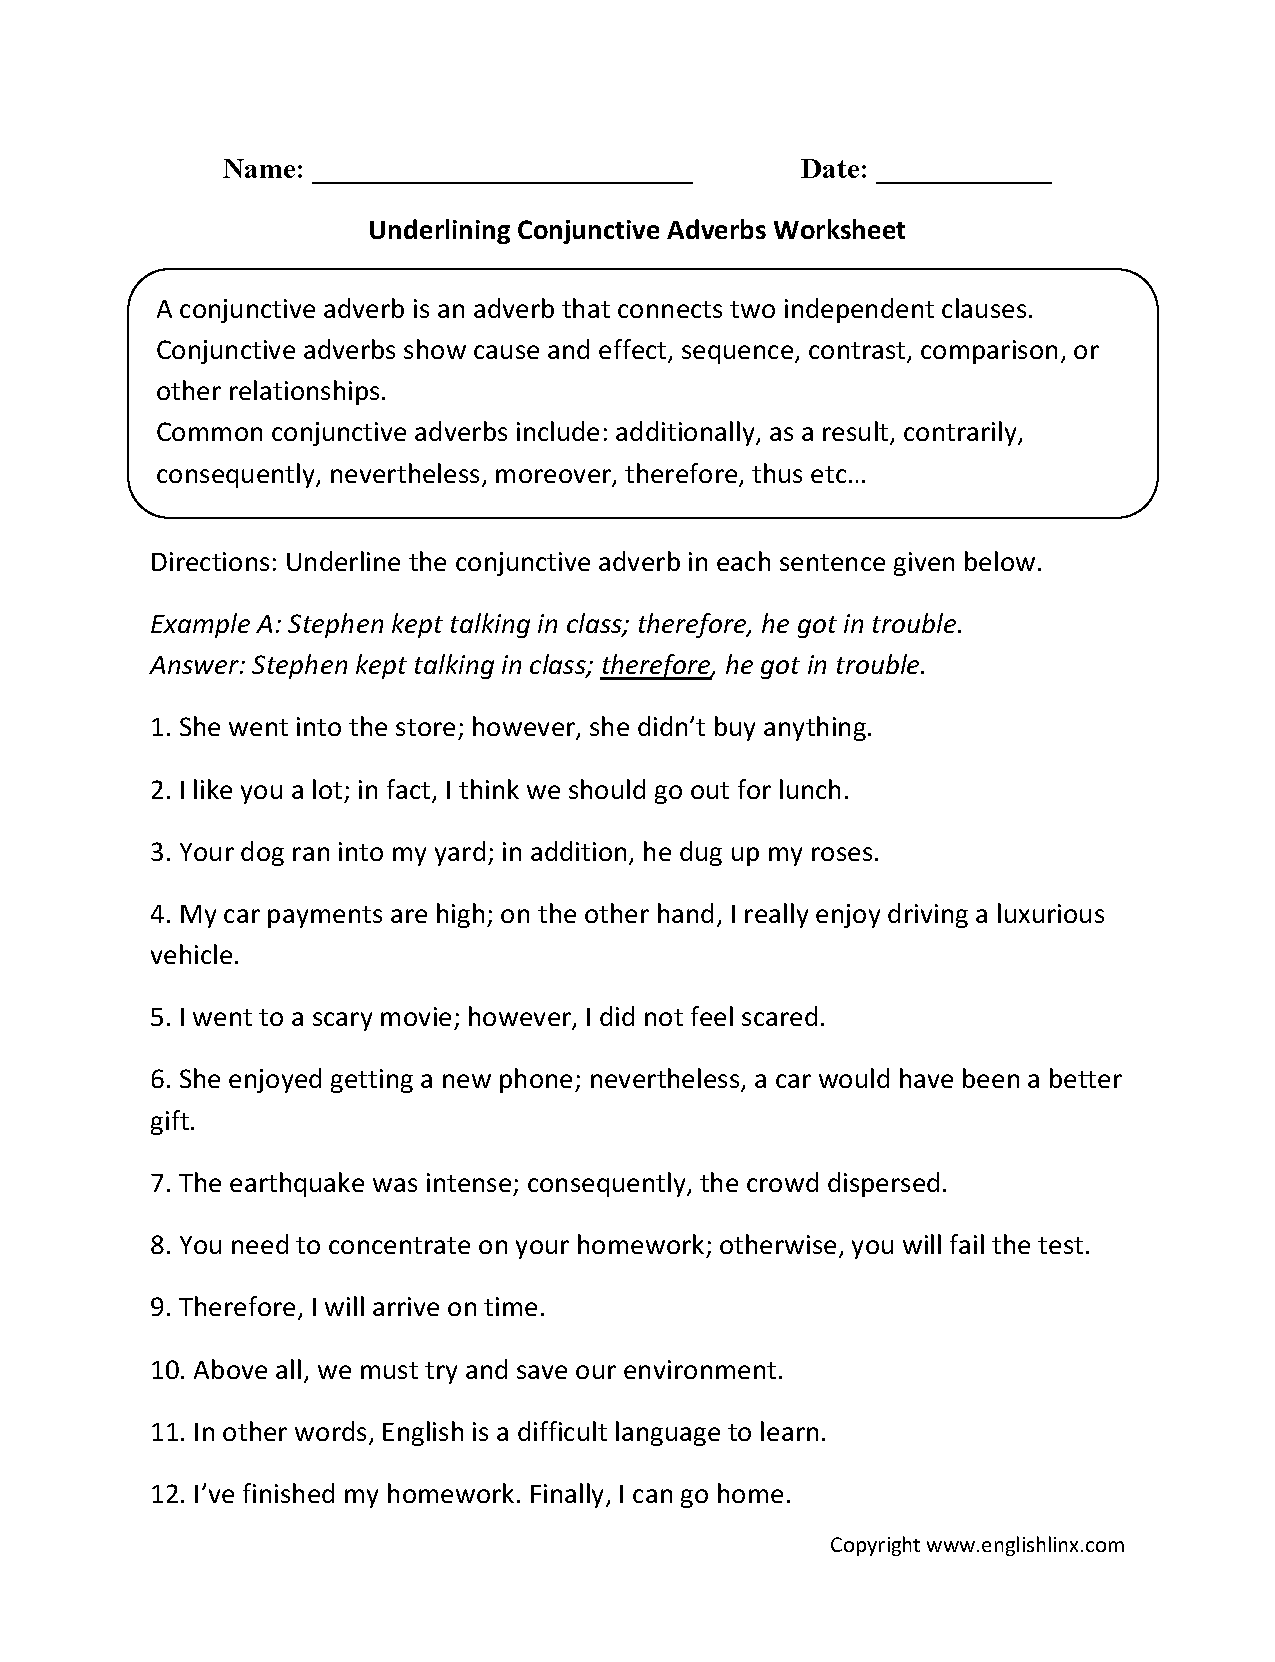 Proatmealus  Inspiring Englishlinxcom  Conjunctions Worksheets With Magnificent Worksheet With Nice Steal Characterization Worksheet Also Math Addition Worksheets Rd Grade In Addition Th Grade Math Problems Worksheets And  Grade Science Worksheets As Well As Area Of Irregular Rectangles Worksheet Additionally Geography Worksheets Rd Grade From Englishlinxcom With Proatmealus  Magnificent Englishlinxcom  Conjunctions Worksheets With Nice Worksheet And Inspiring Steal Characterization Worksheet Also Math Addition Worksheets Rd Grade In Addition Th Grade Math Problems Worksheets From Englishlinxcom